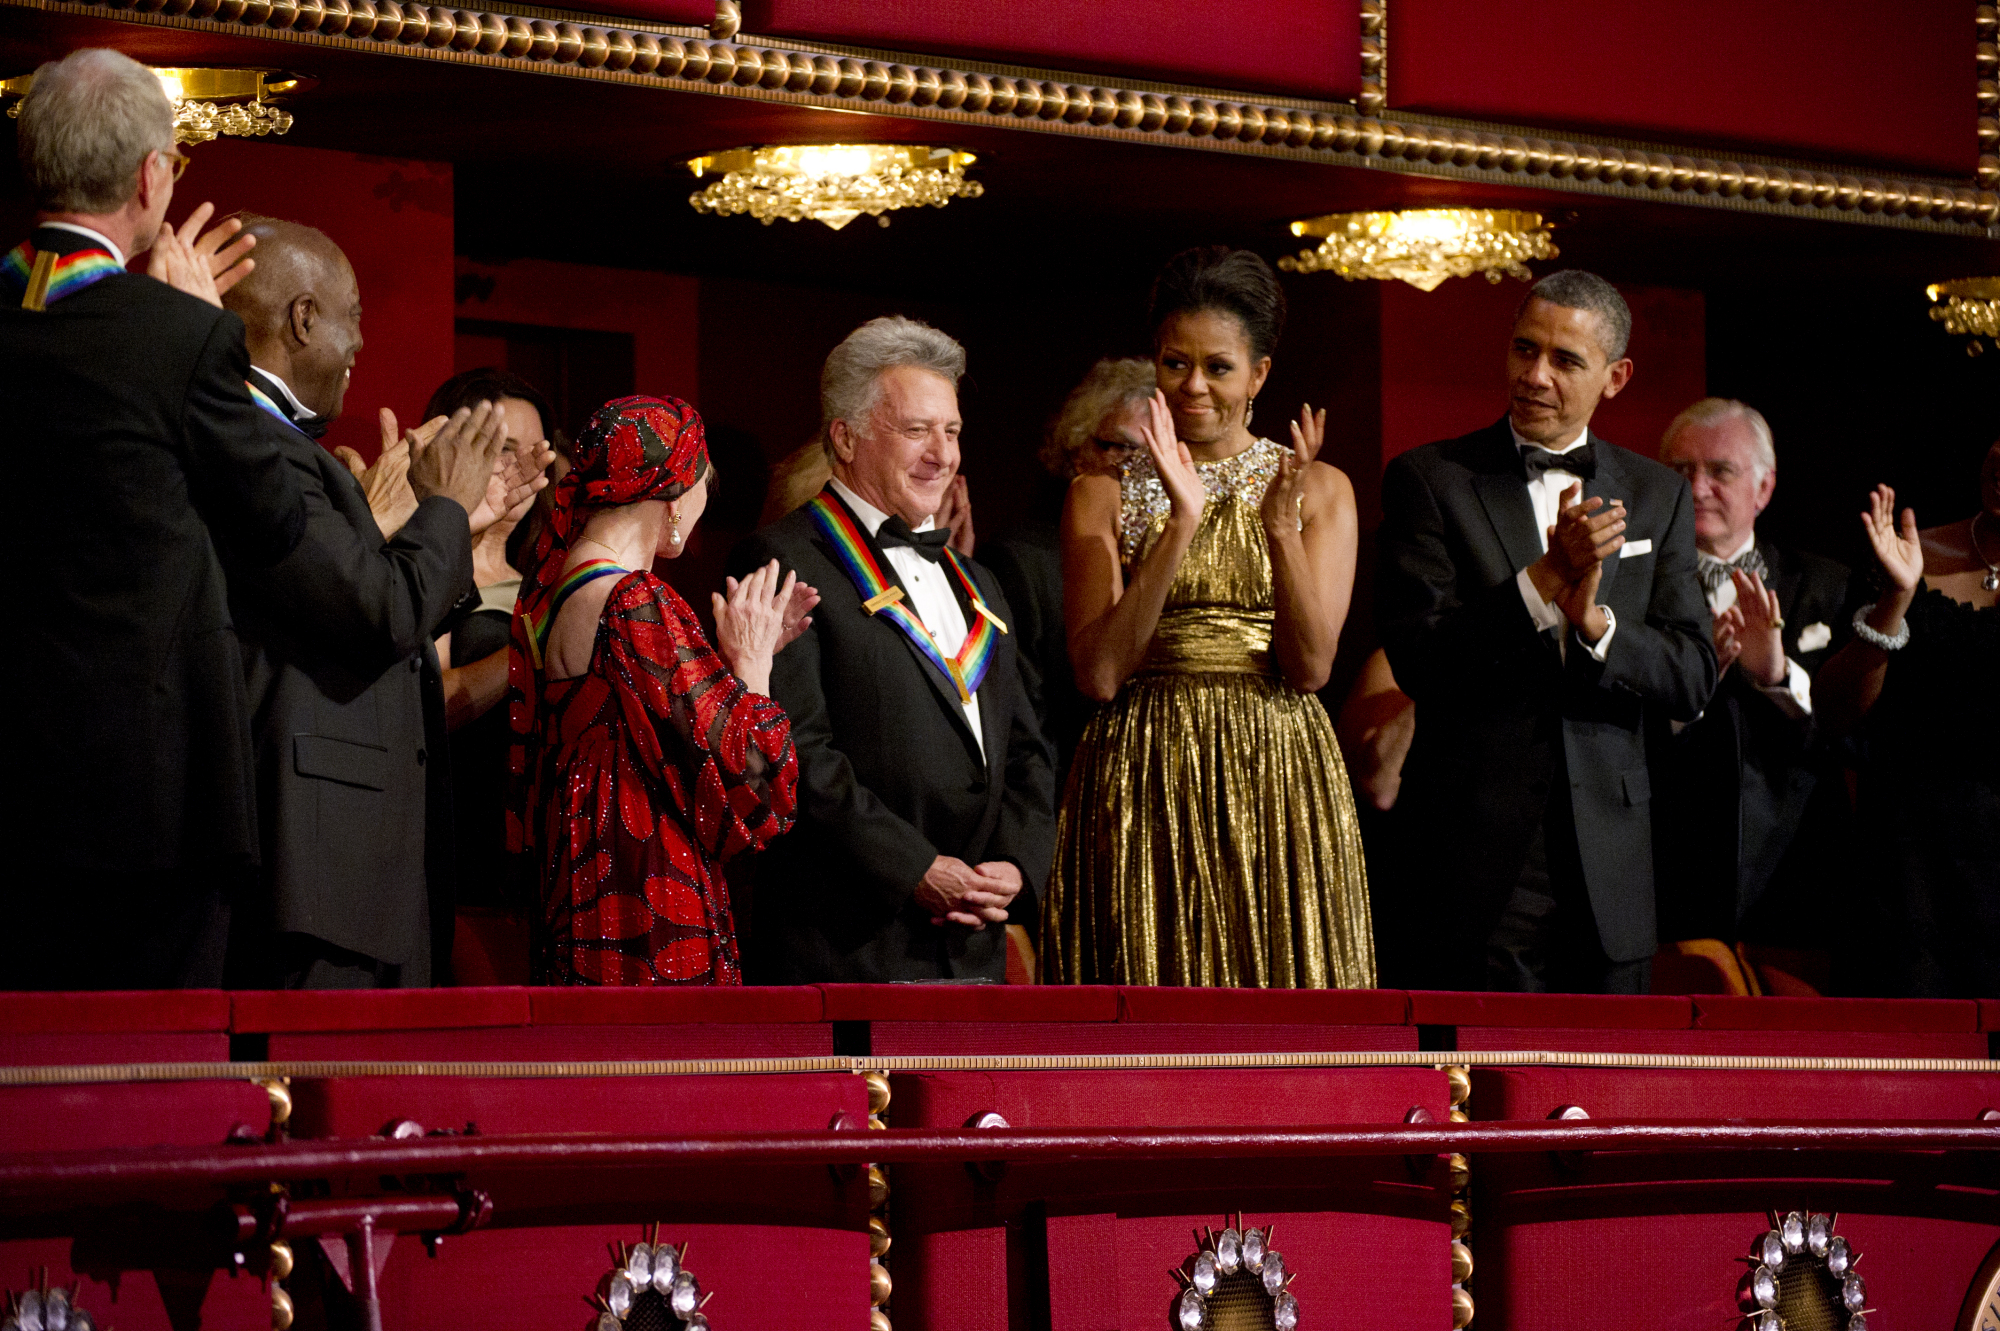 The 35th Annual Kennedy Center Honors